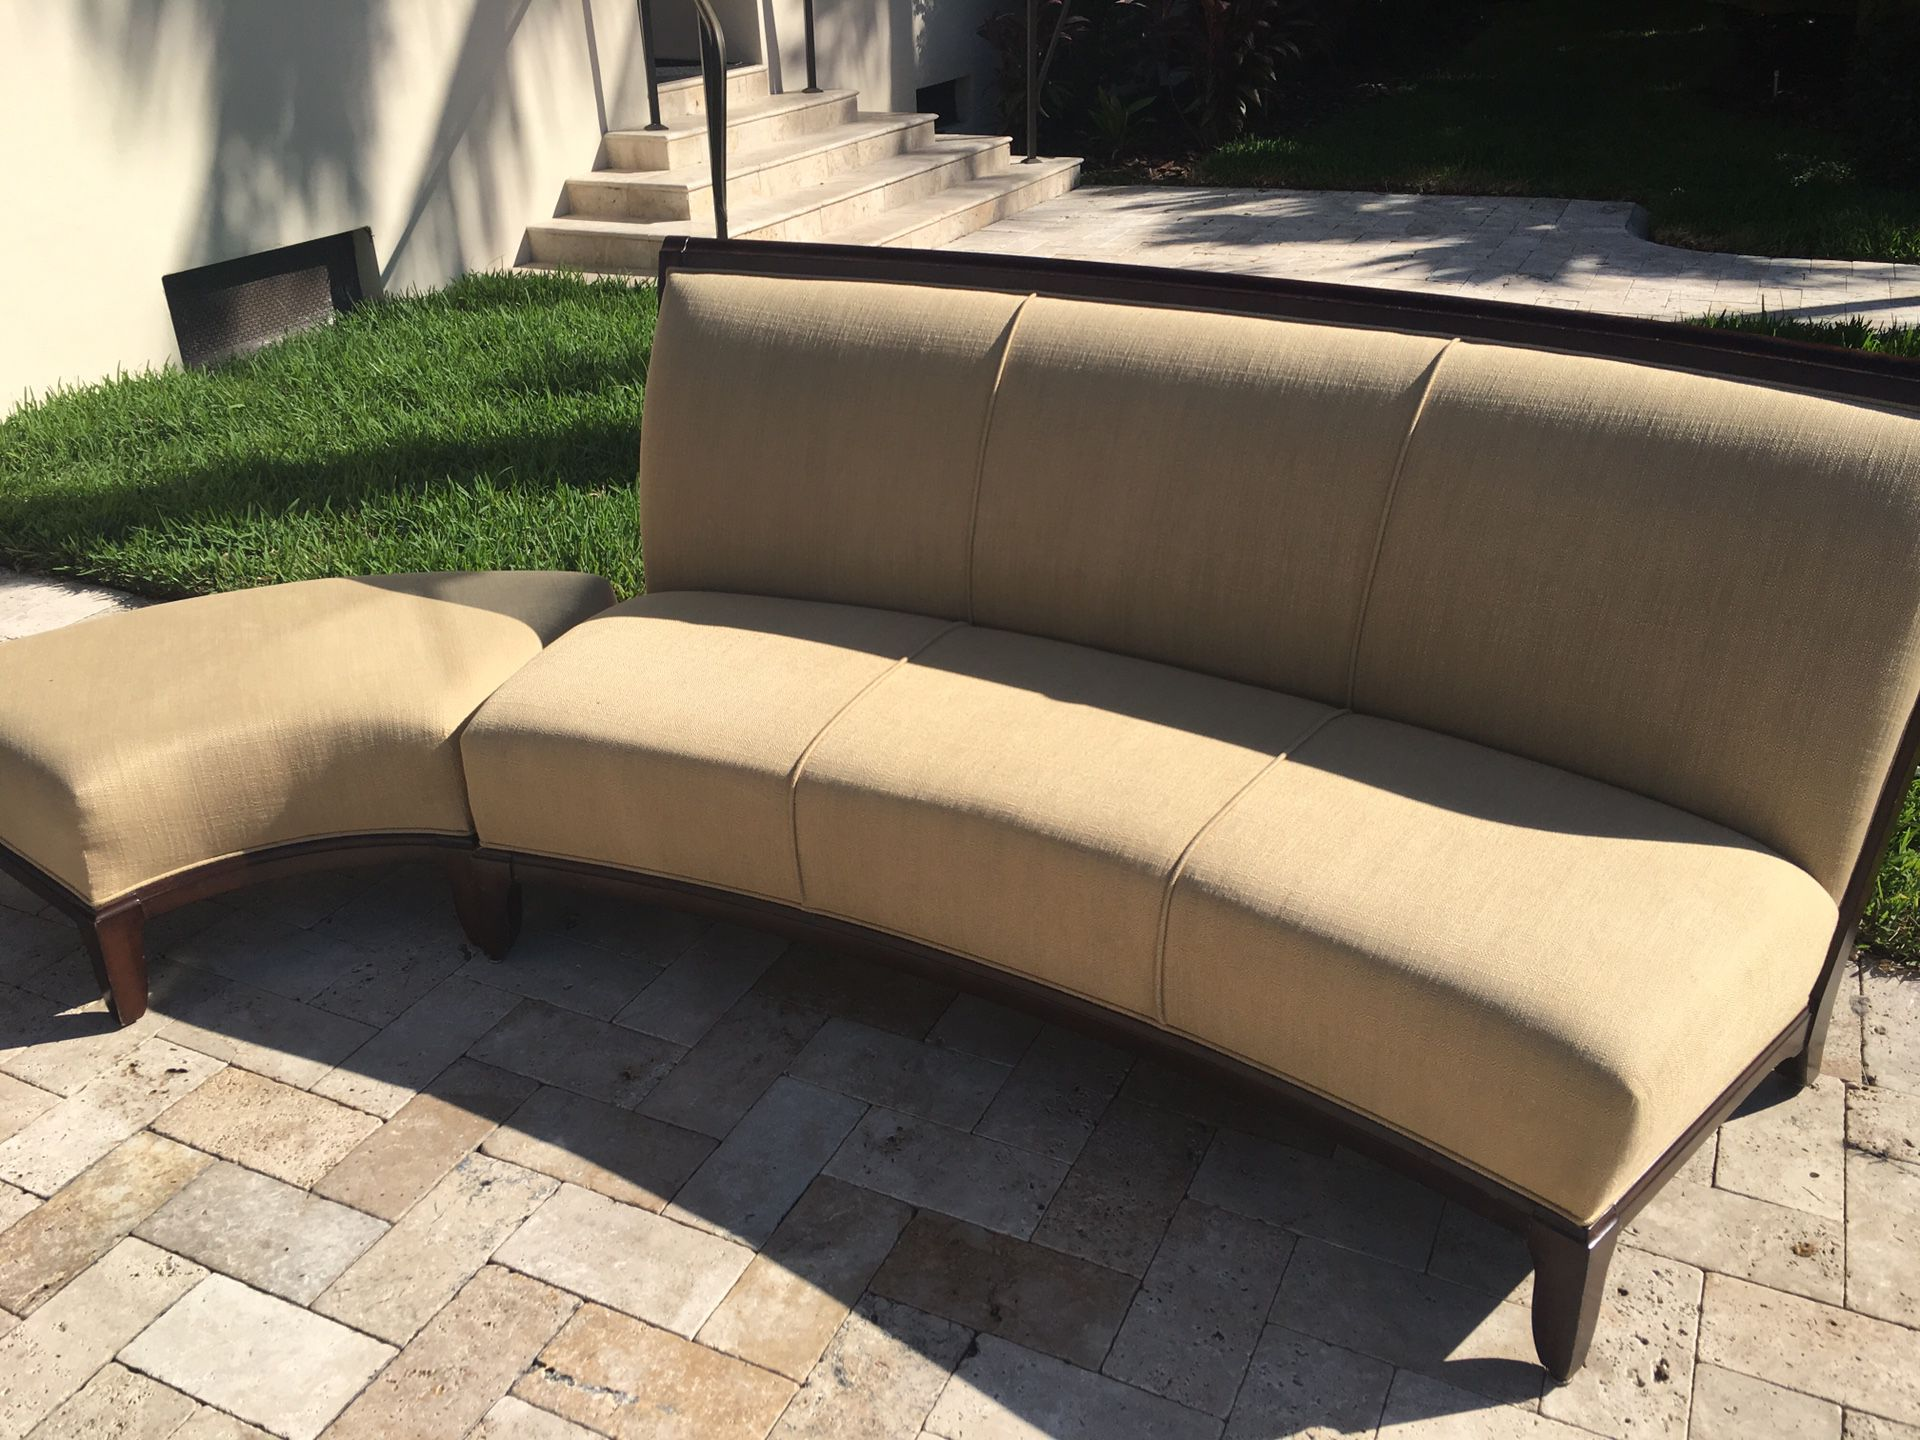 Two couches plus ottoman for sale